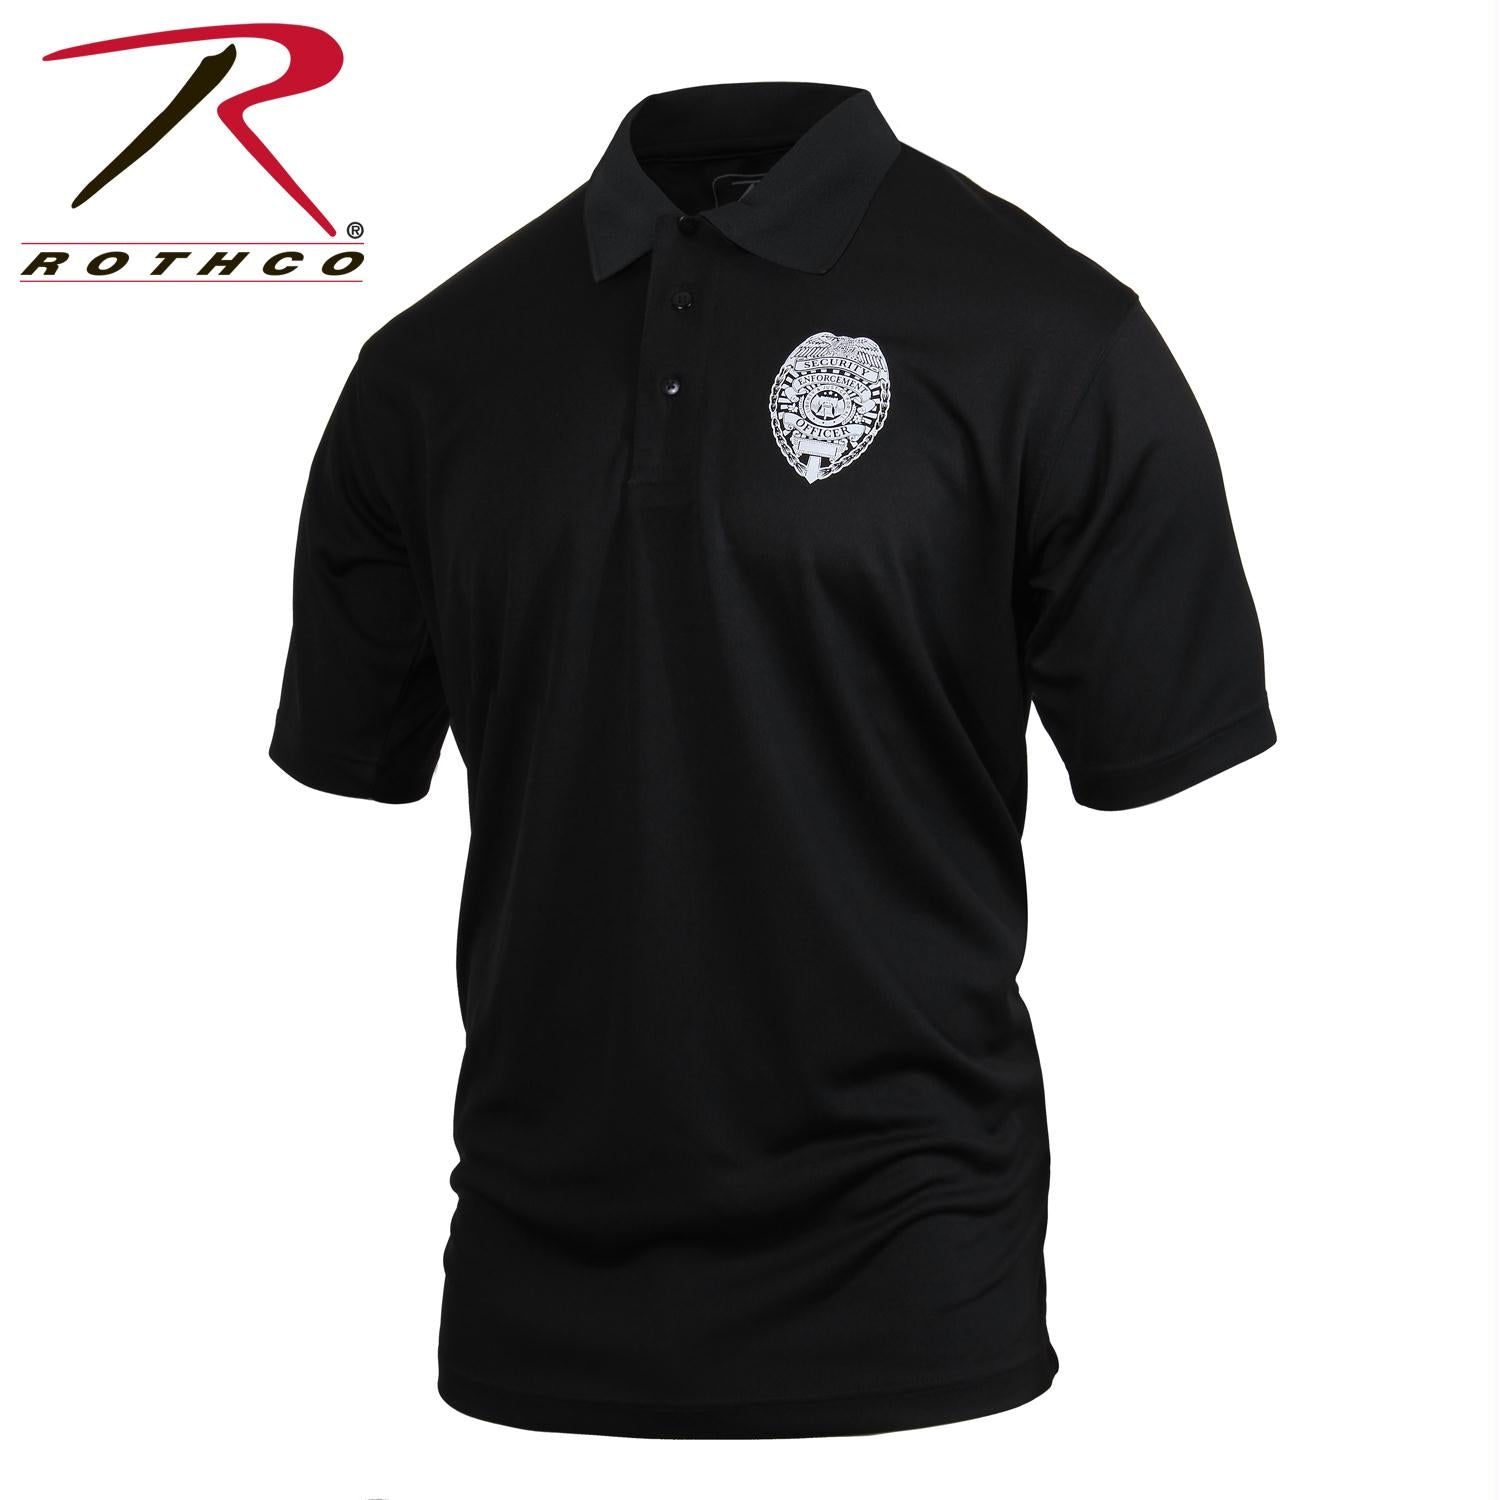 Rothco Moisture Wicking Security Polo Shirt With Badge - S